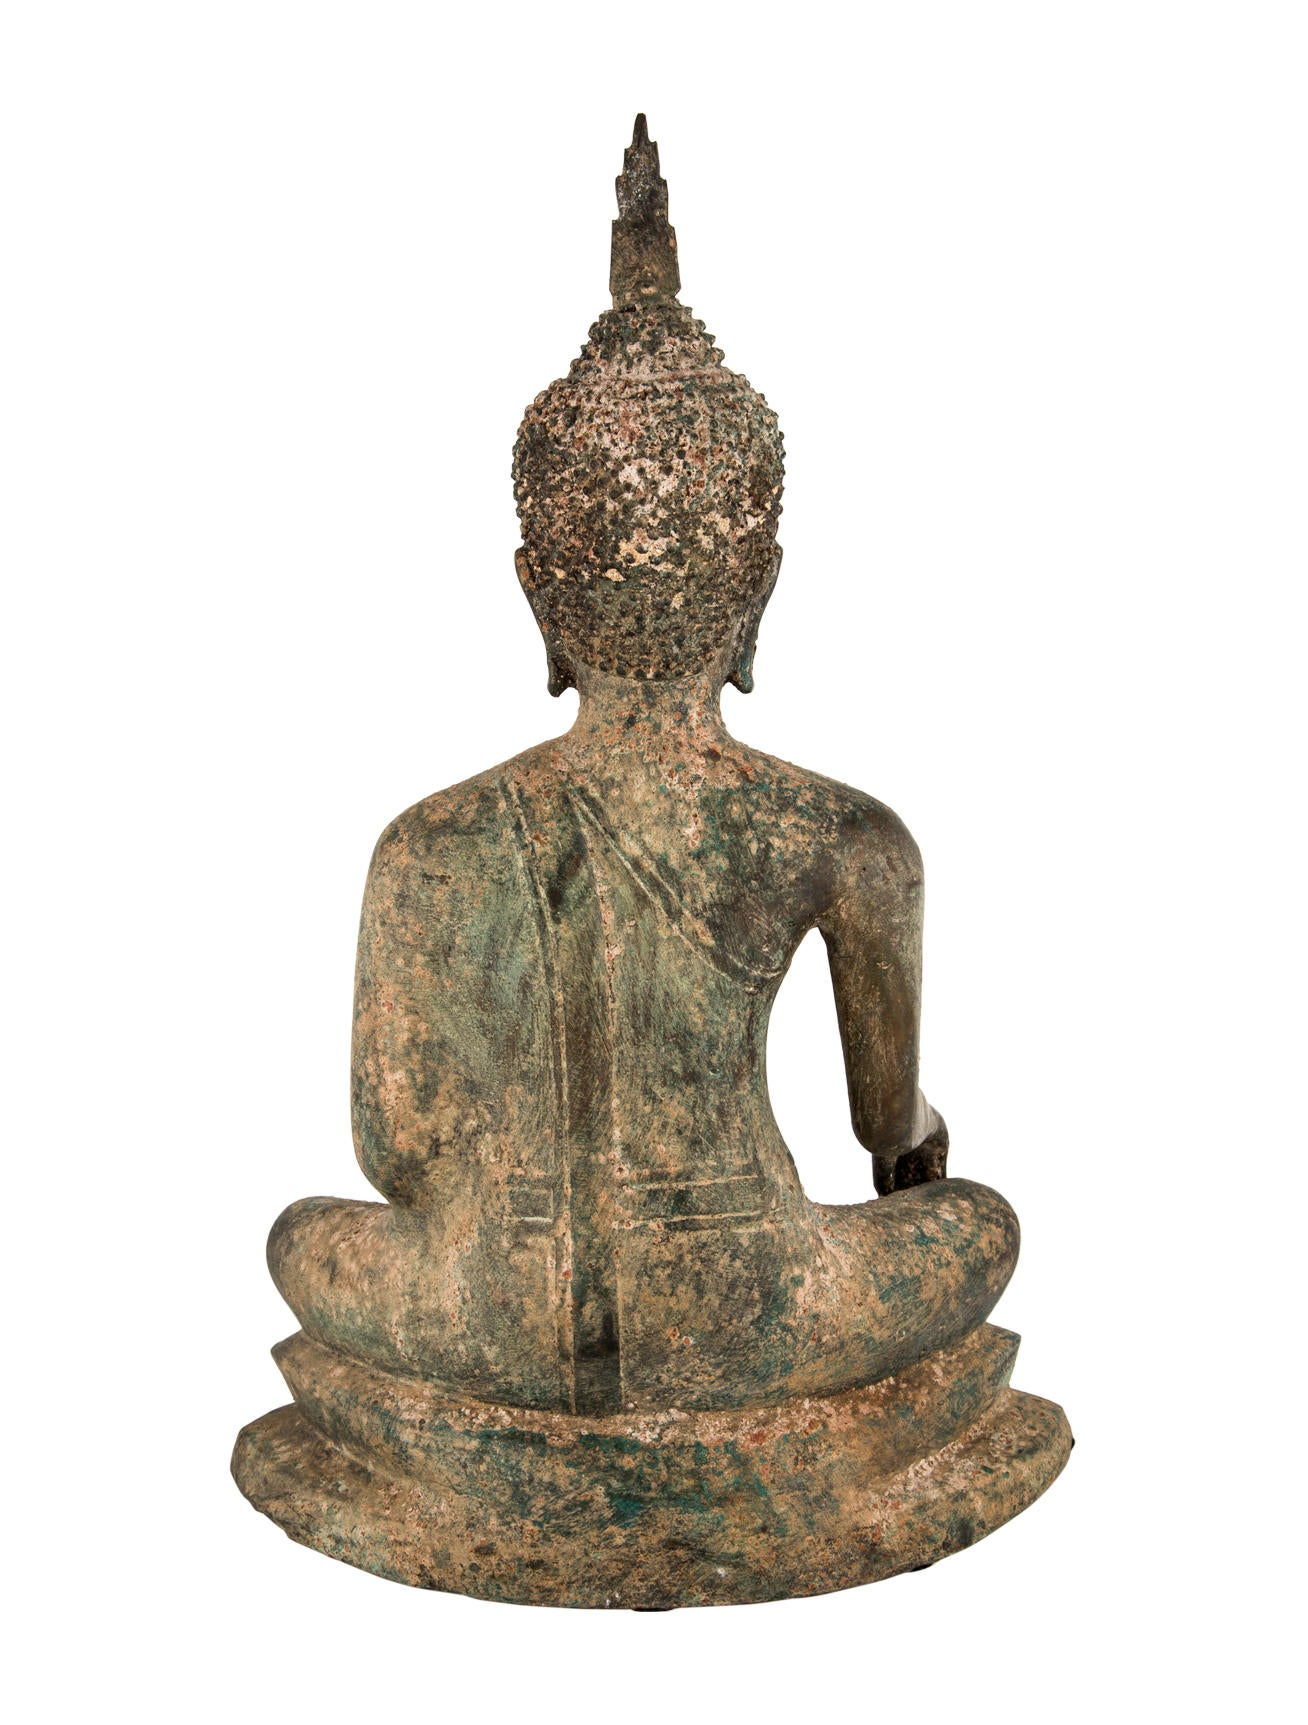 Bronze sitting buddha decor and accessories decor21209 for Buddha decorations for the home